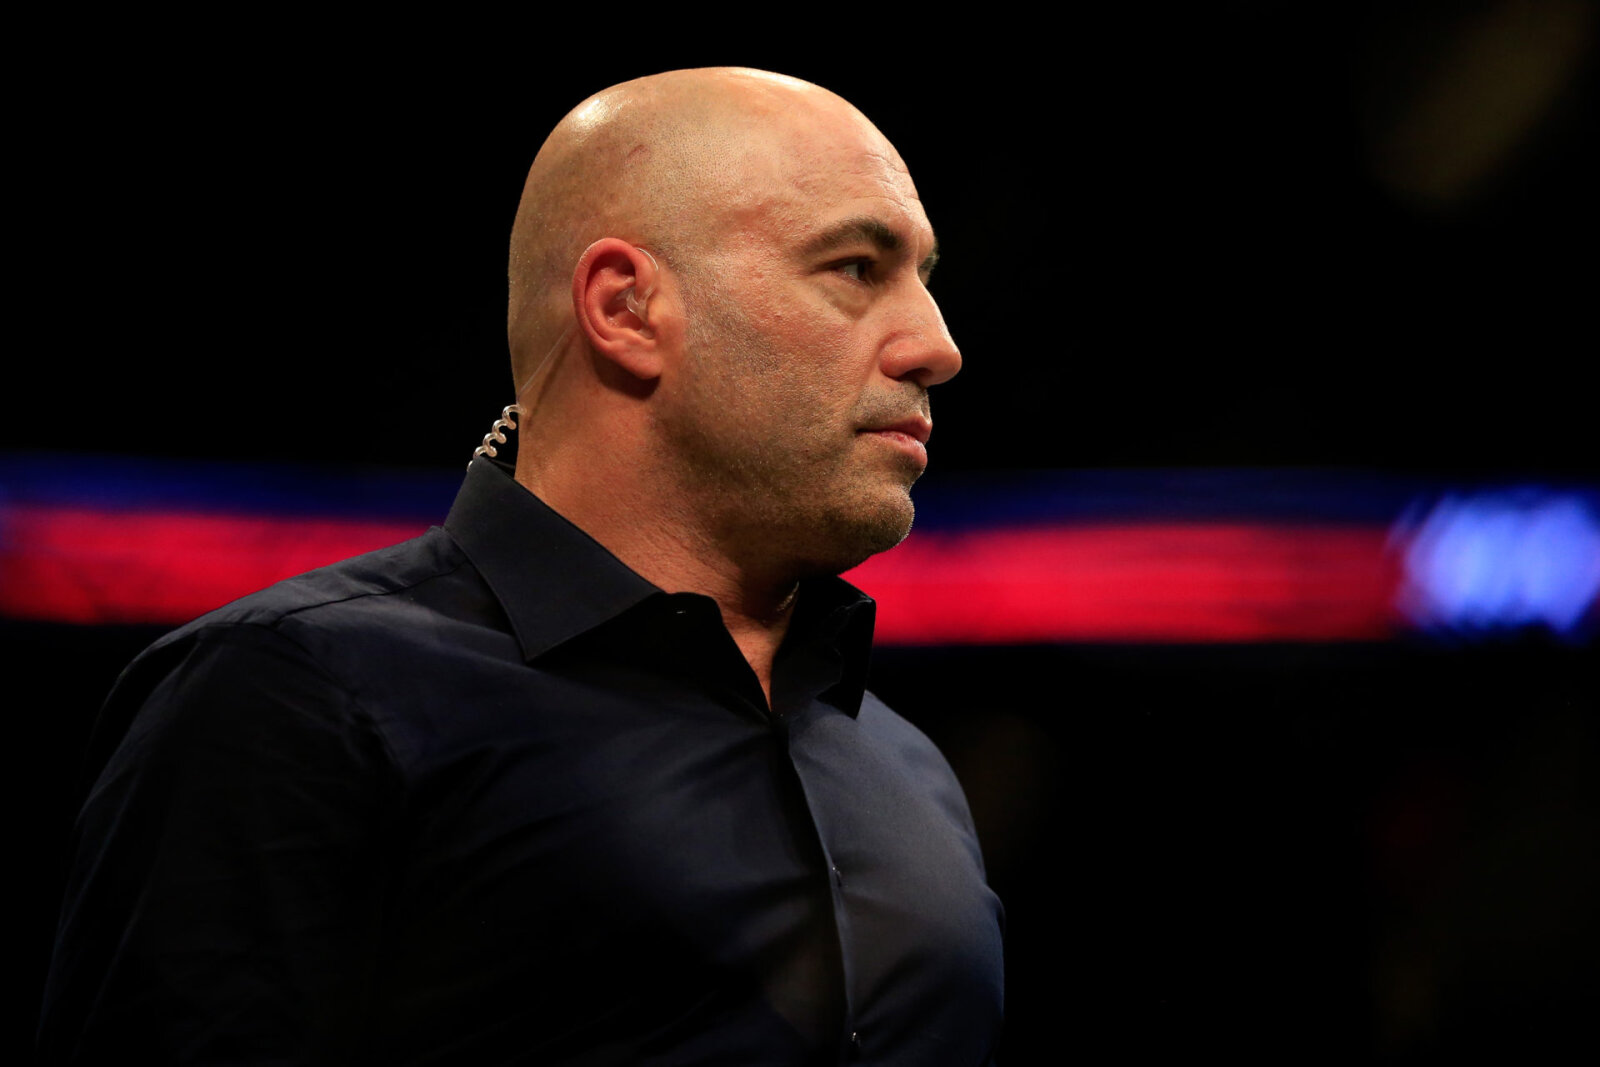 'There Should Be Some Penalty'- Joe Rogan Goes Off on MMA Fighters Missing Weight